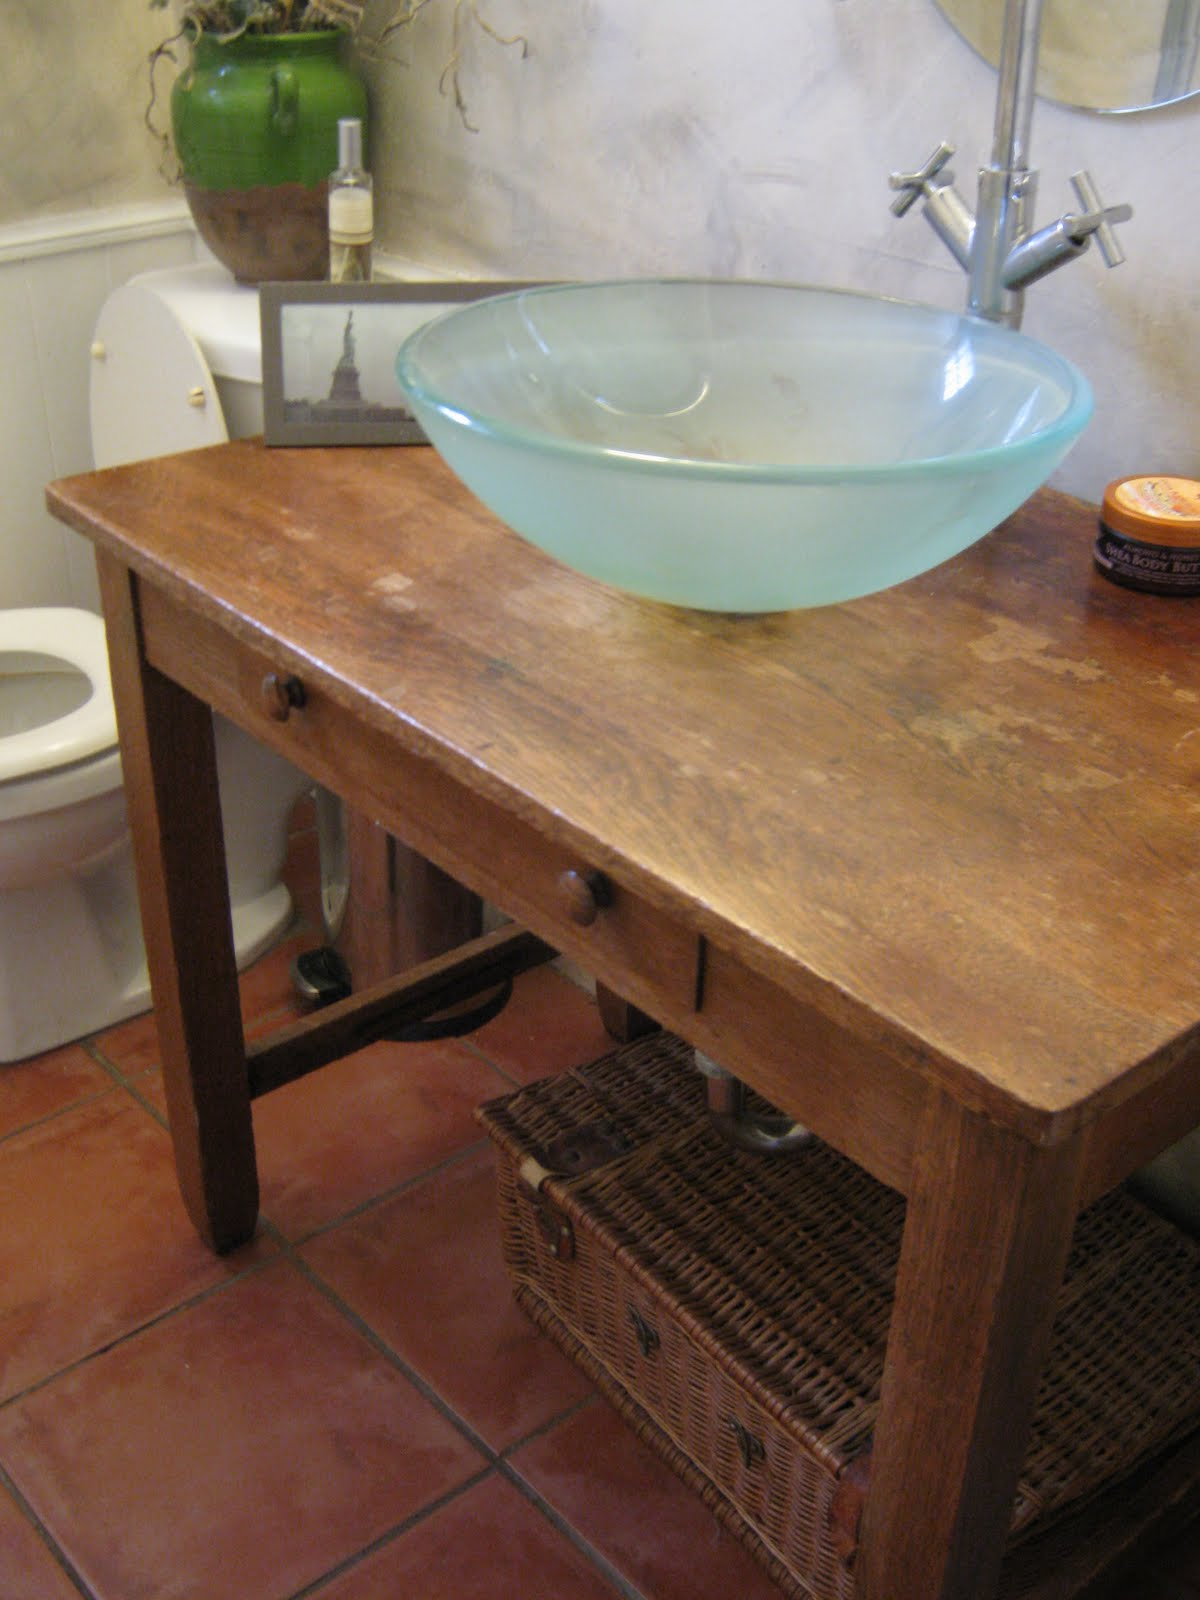 Antique Bathroom Vanity Vessel Sink